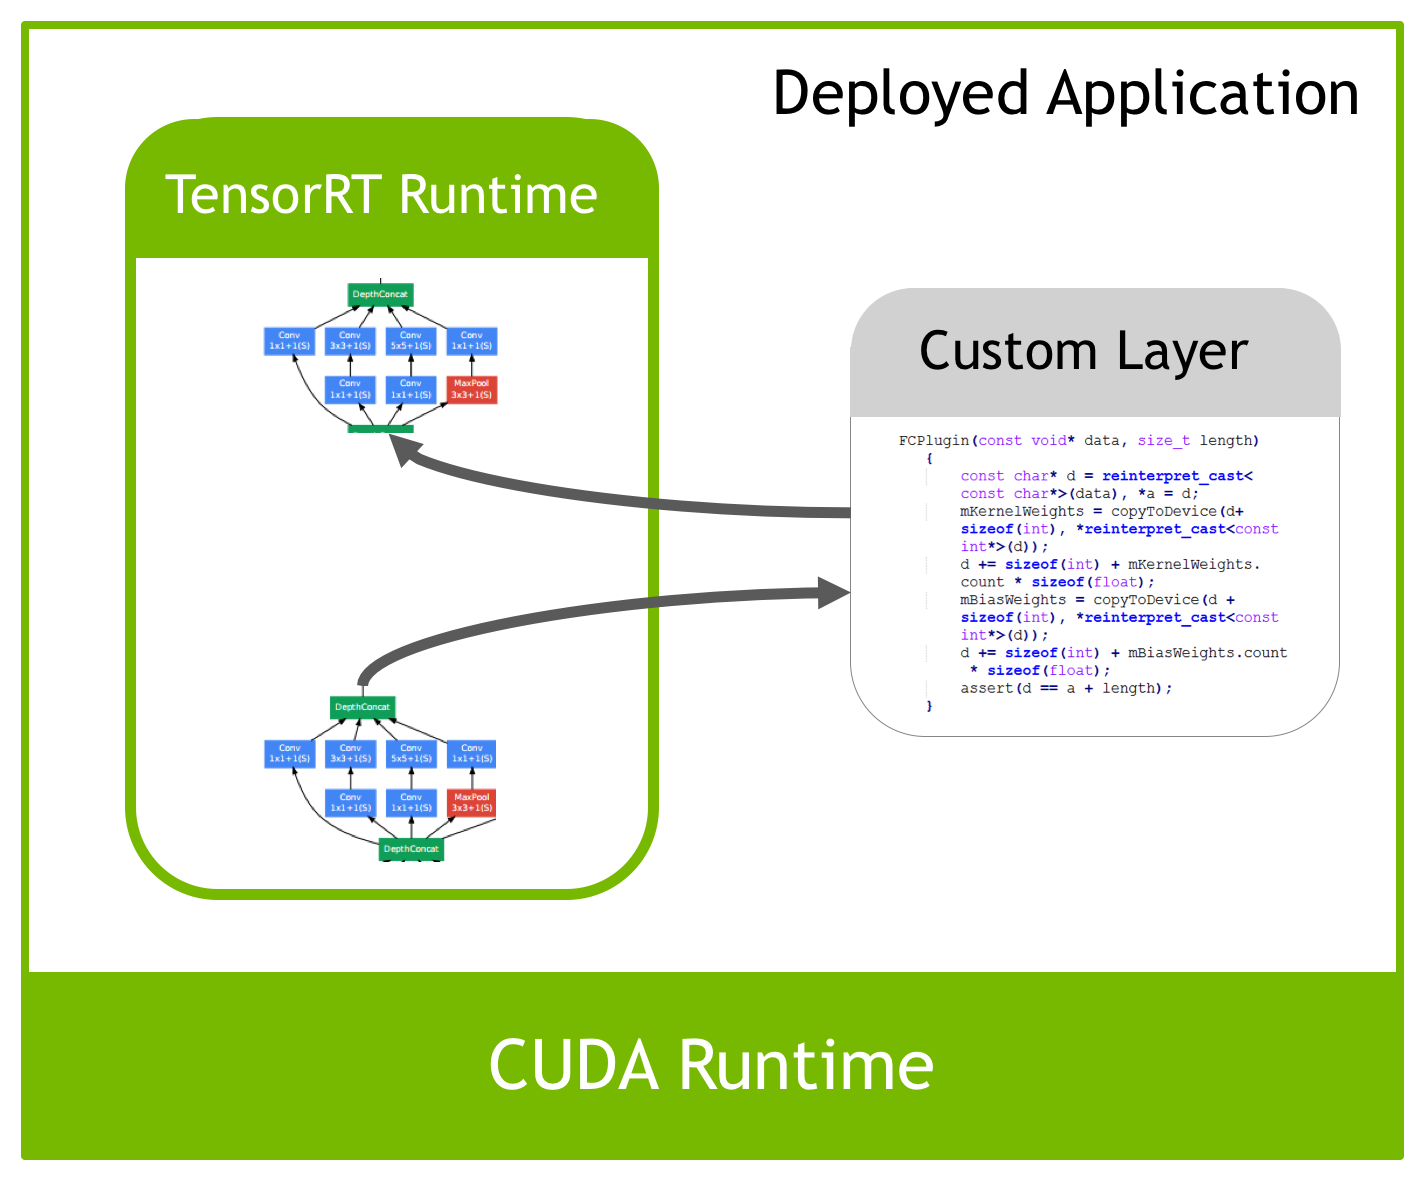 Figure 3. Custom layers can be integrated into the TensorRT runtime as plugins.